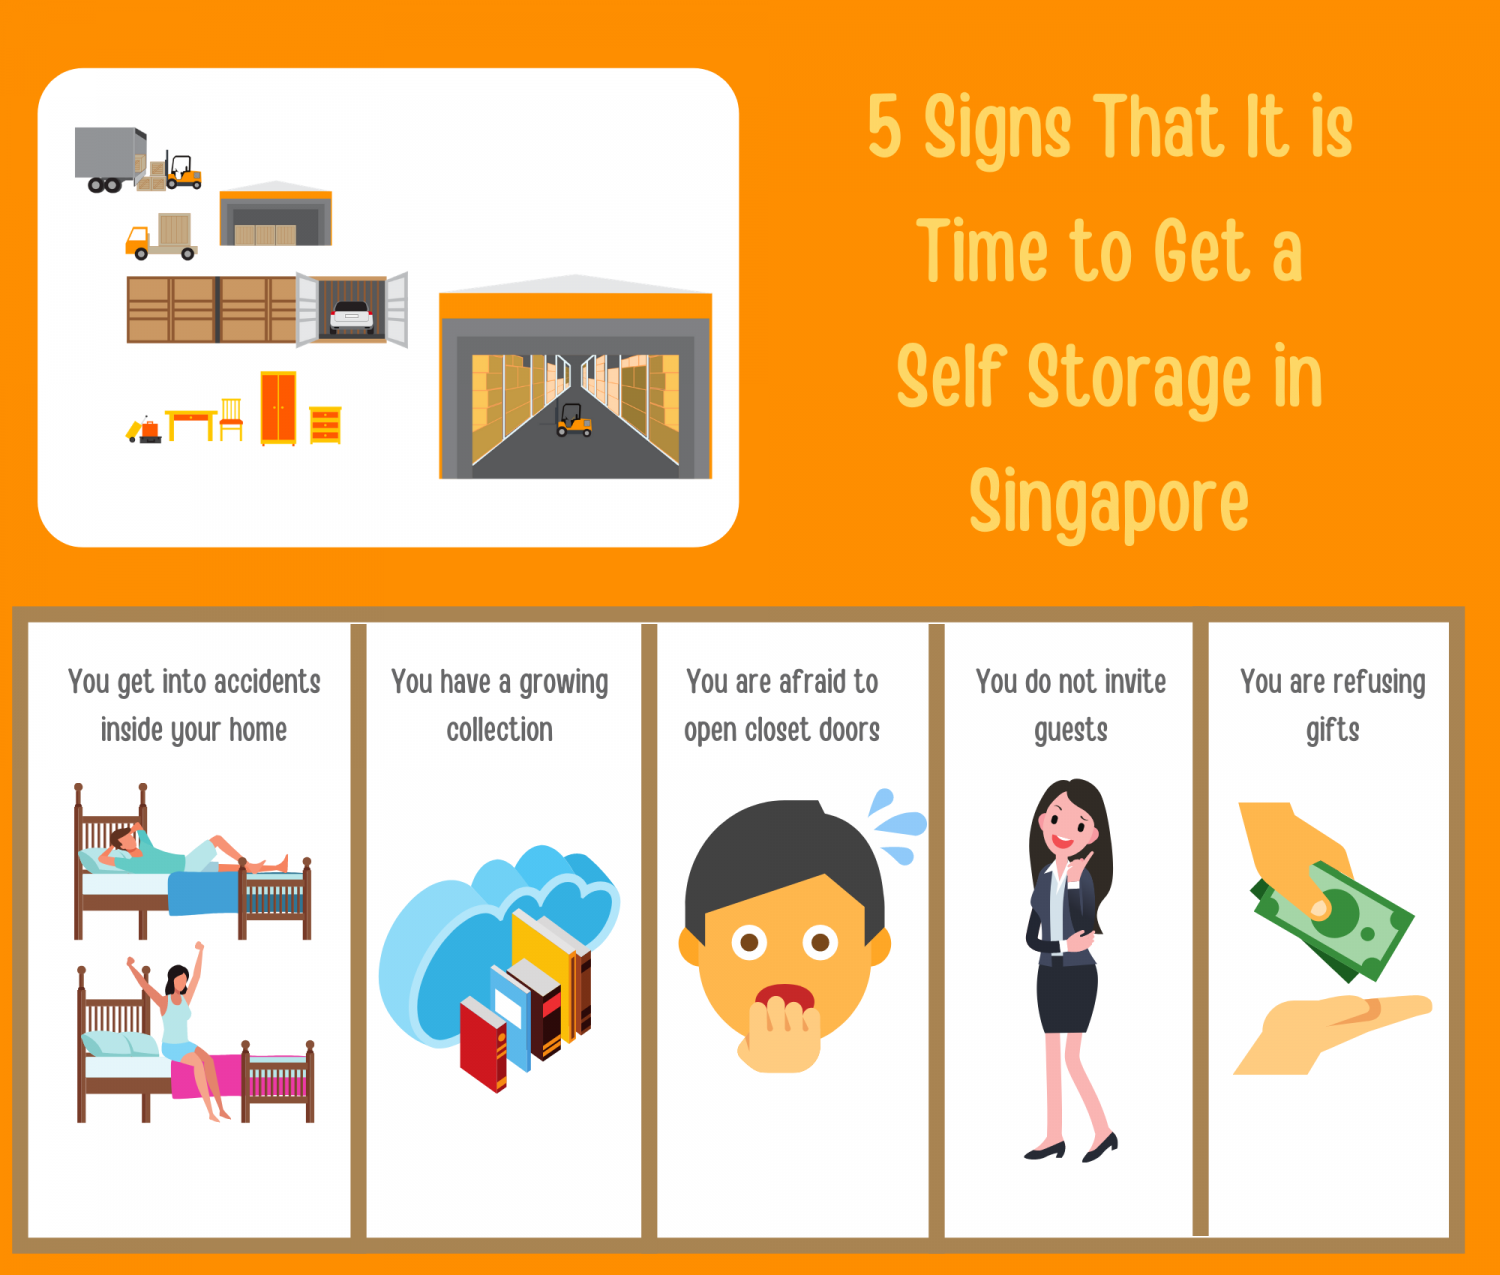 5 Signs That It is Time to Get a Self Storage in Singapore Infographic